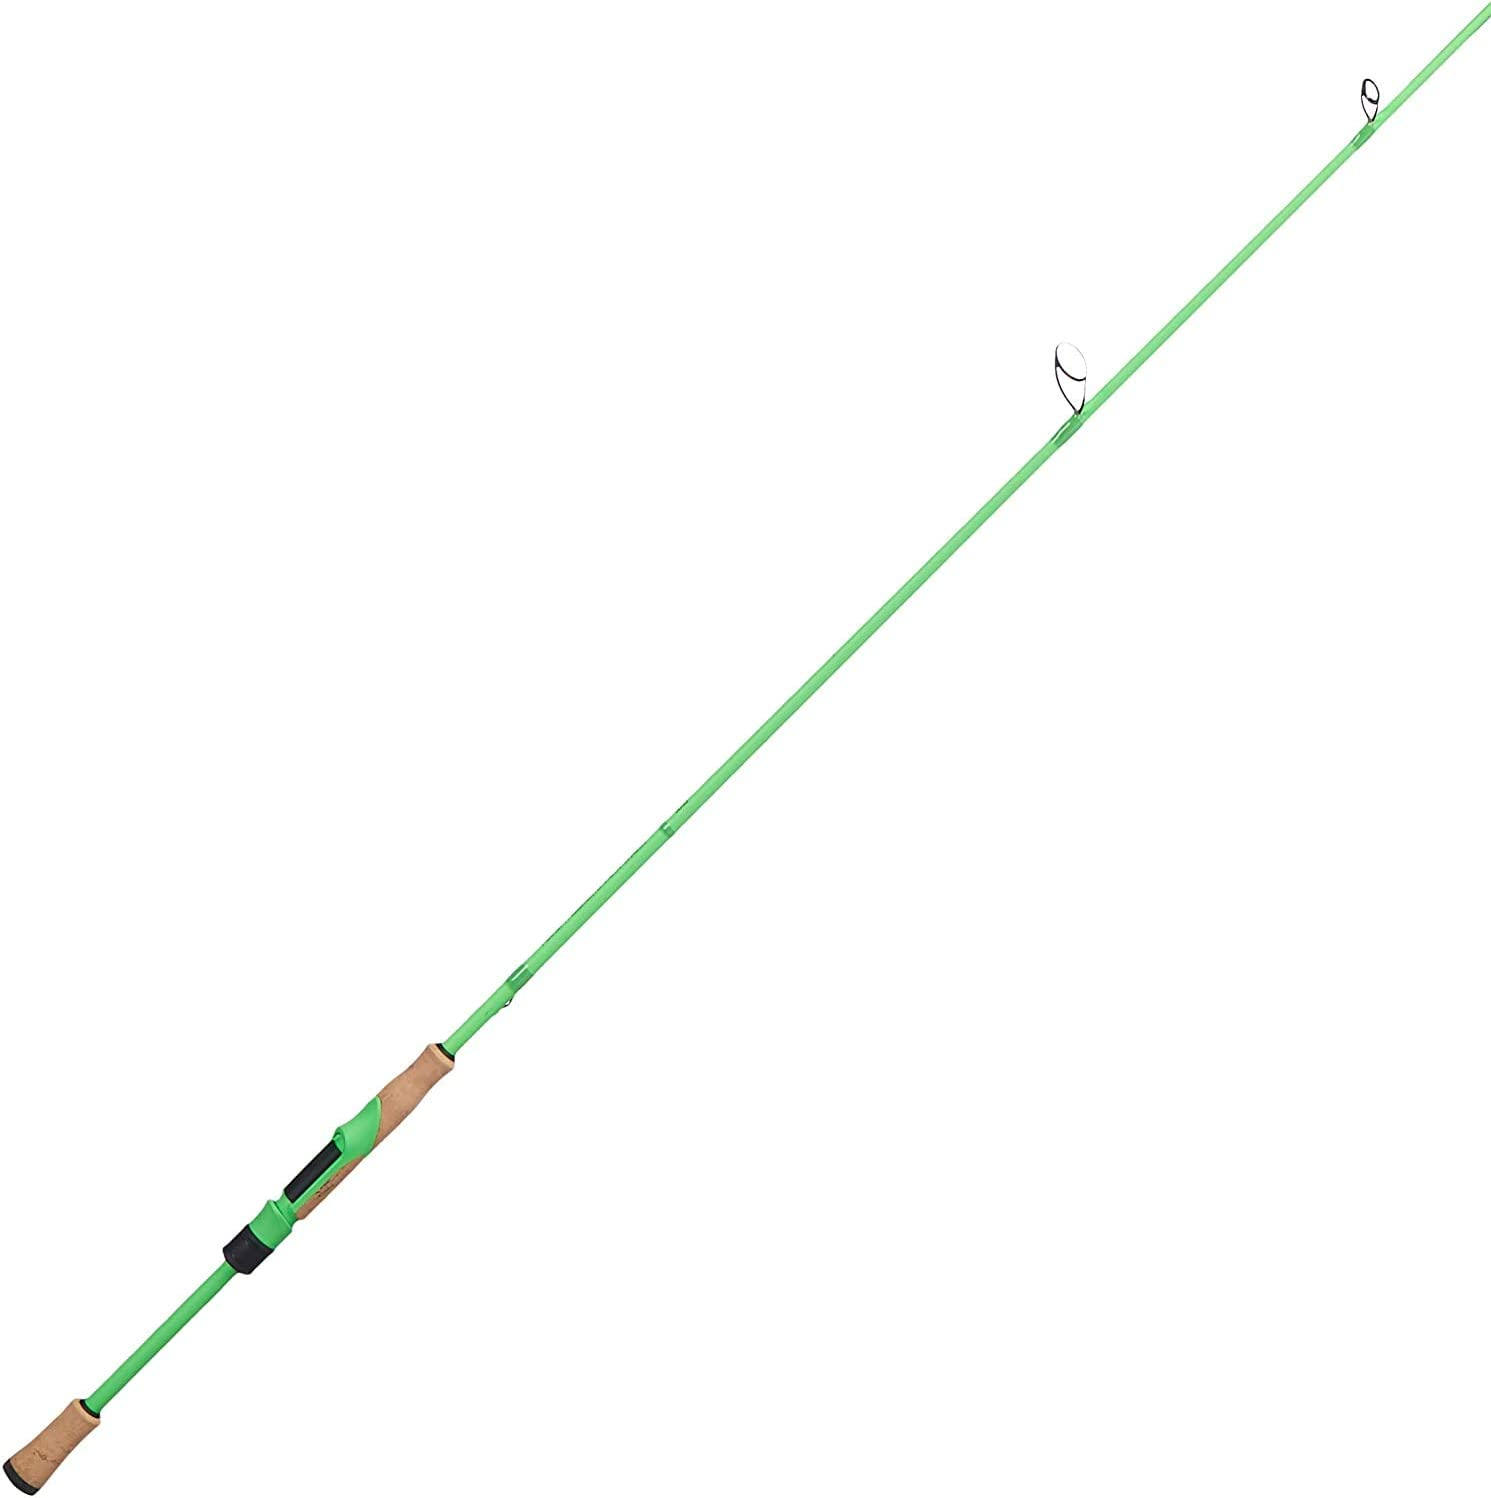 13 FISHING Fate Black 2 Freshwater Casting Fishing Rod